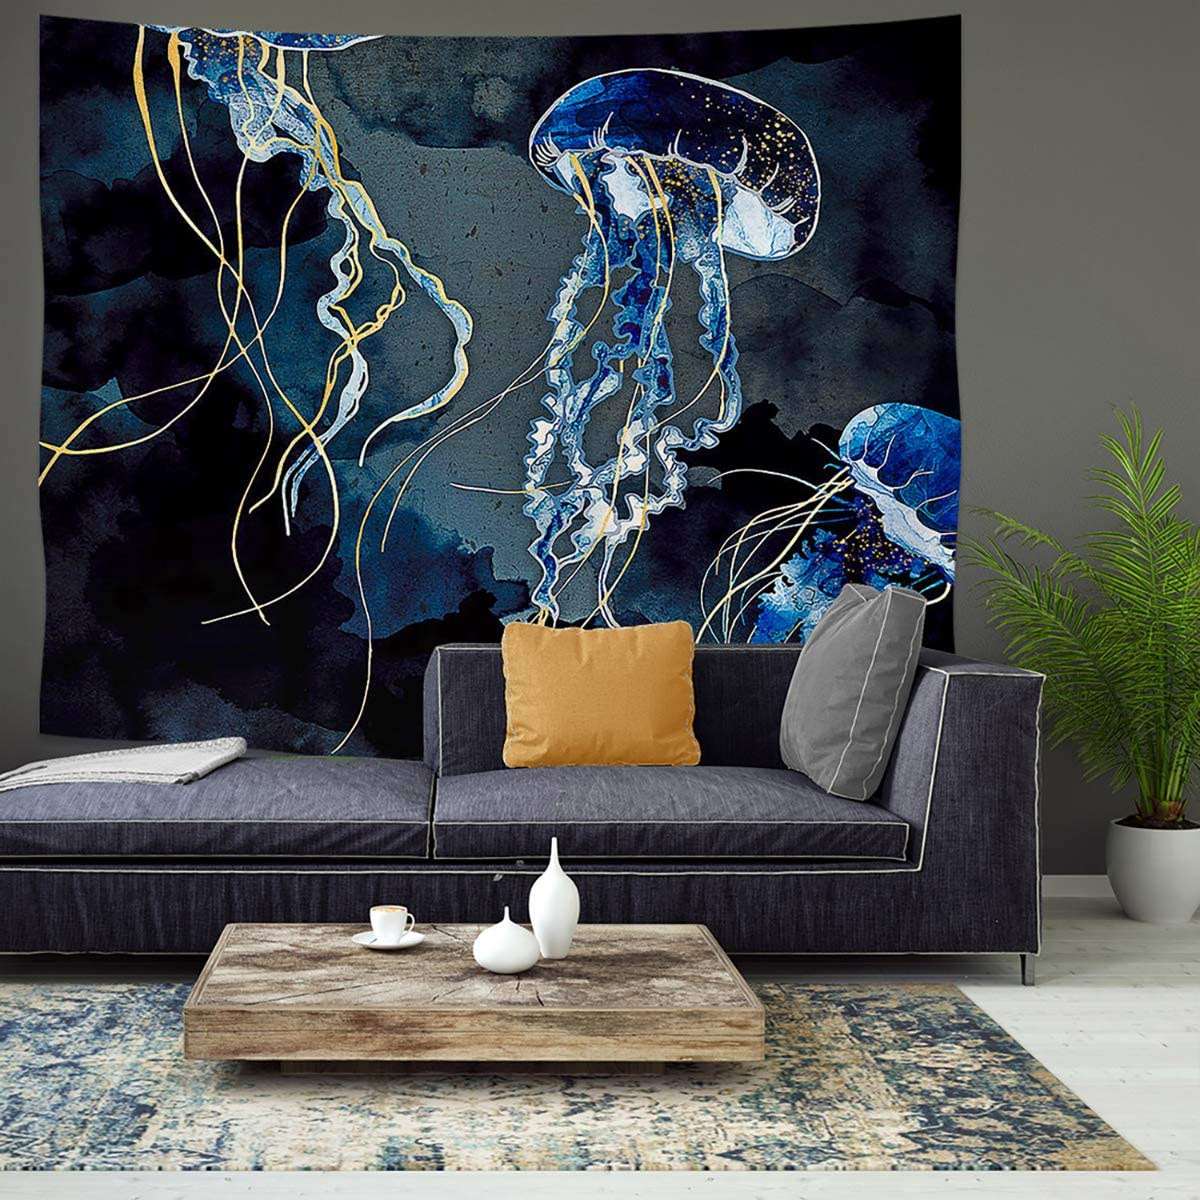 JOYPLUS Fantasy Jellyfish Tapestry, Abstract Under Sea Artistic Black Blue Tapestries, Wall Hanging for Bedroom Living Room Dorm